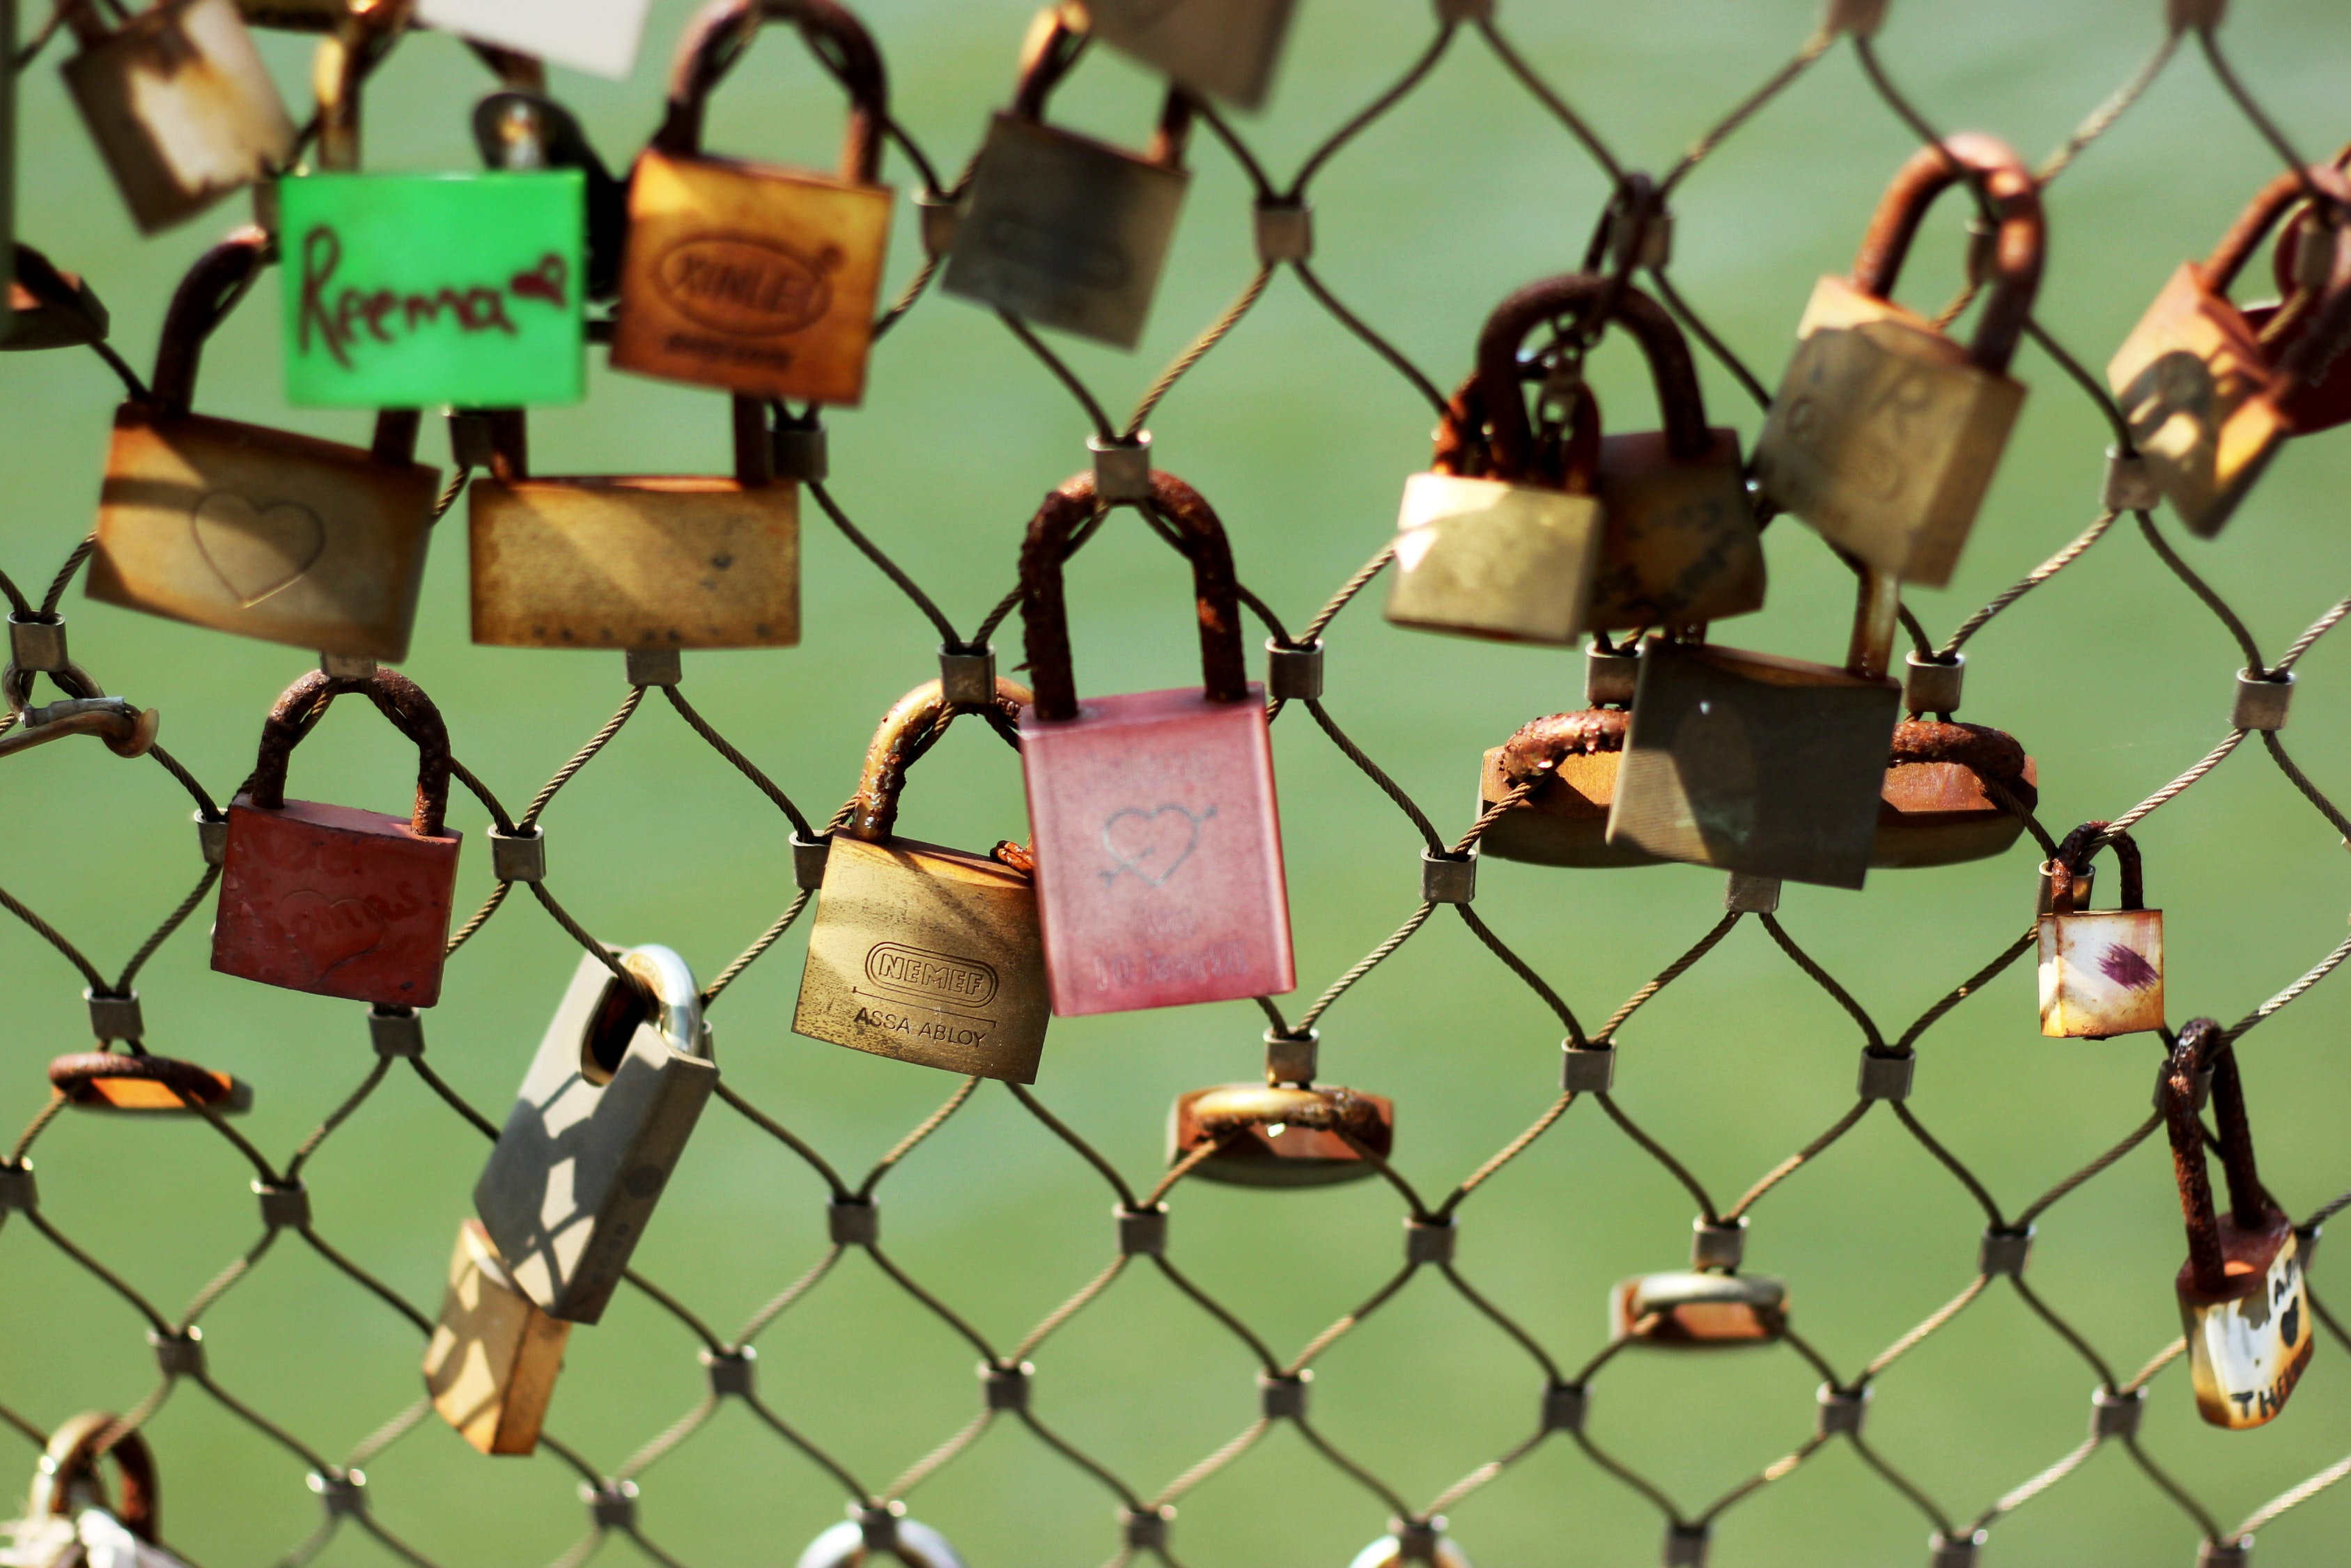 assorted-color padlock lot on fence